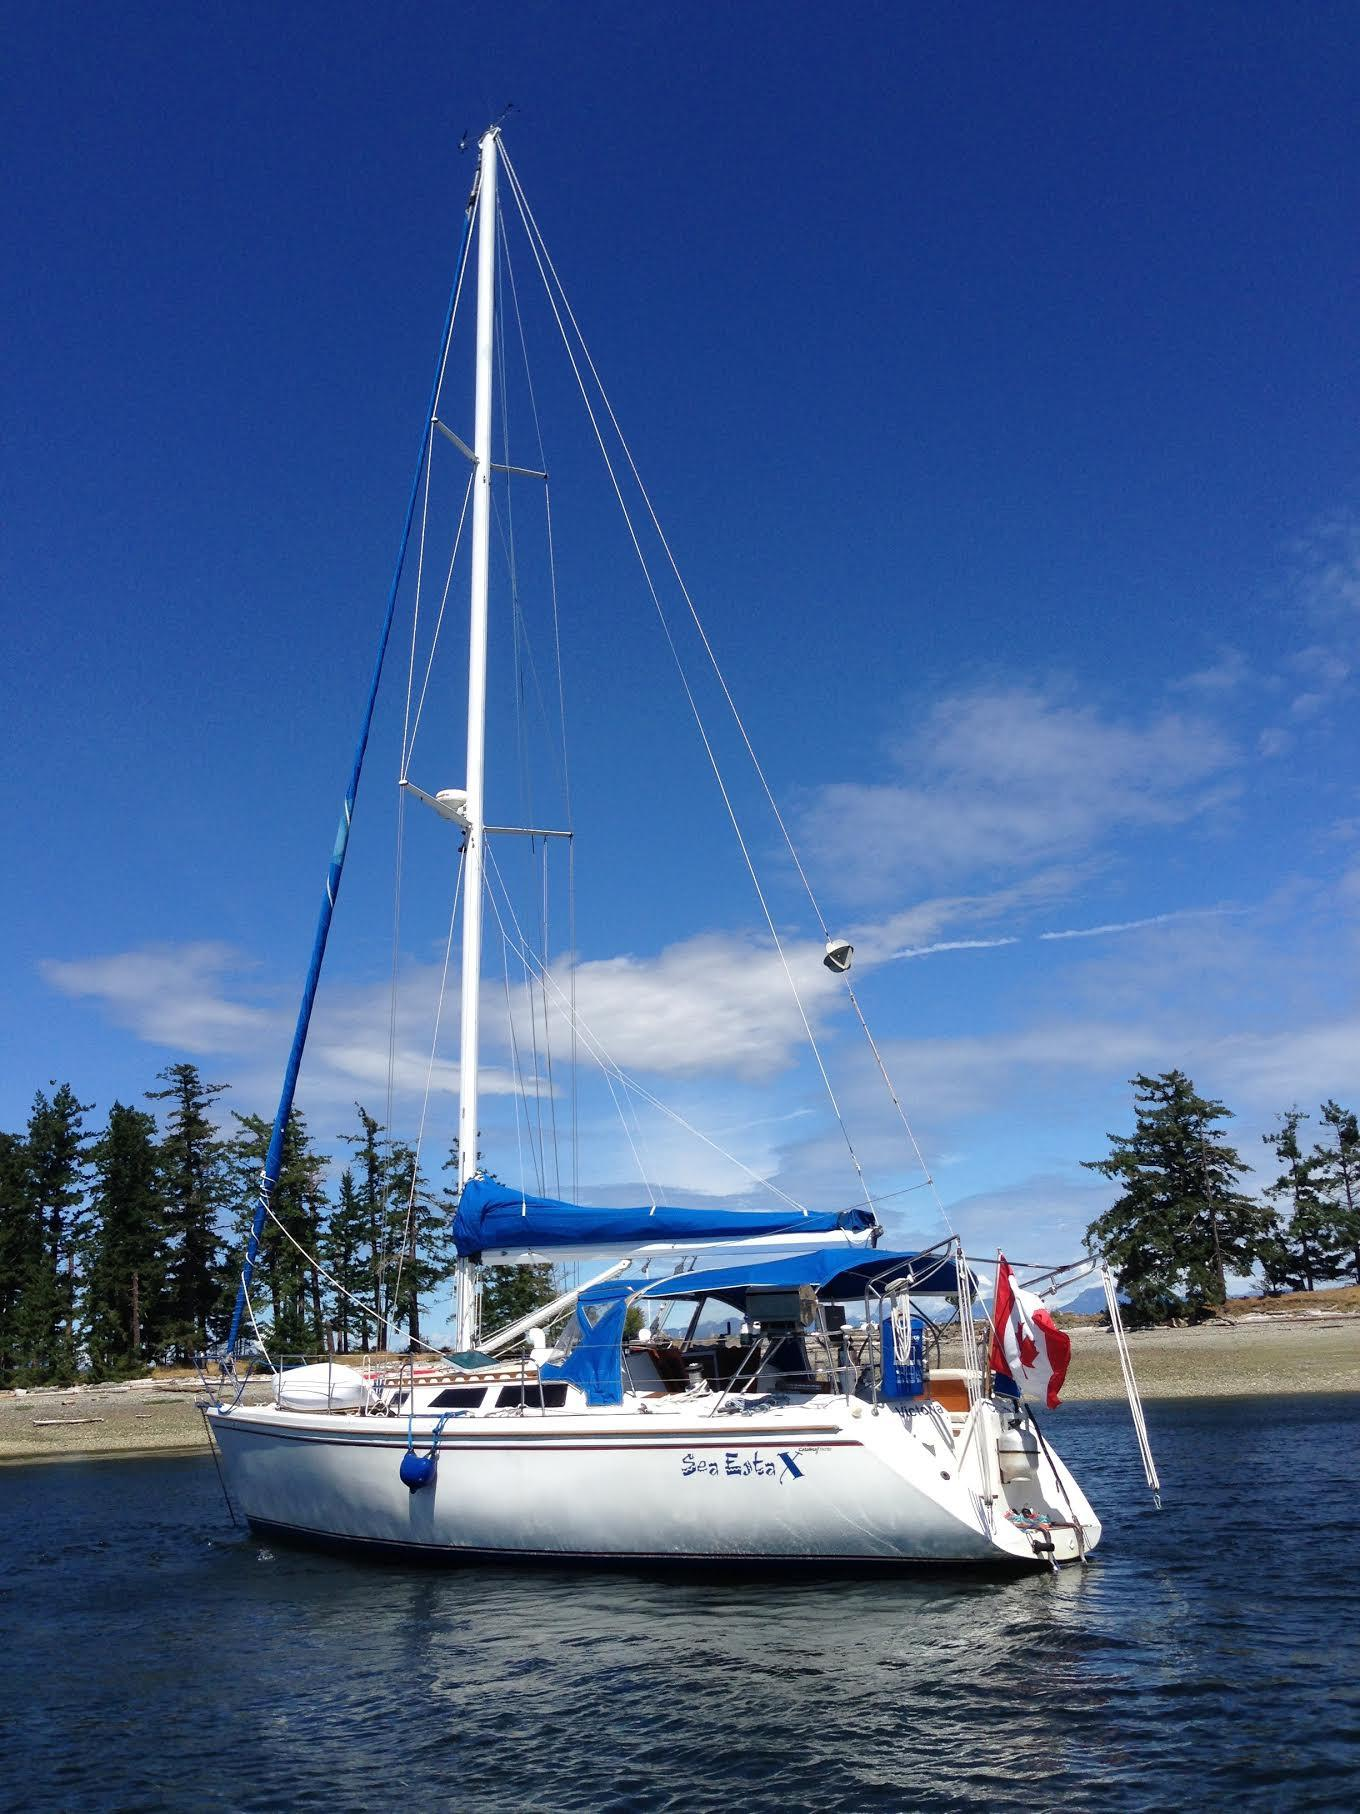 42' Catalina MKI+Boat for sale!